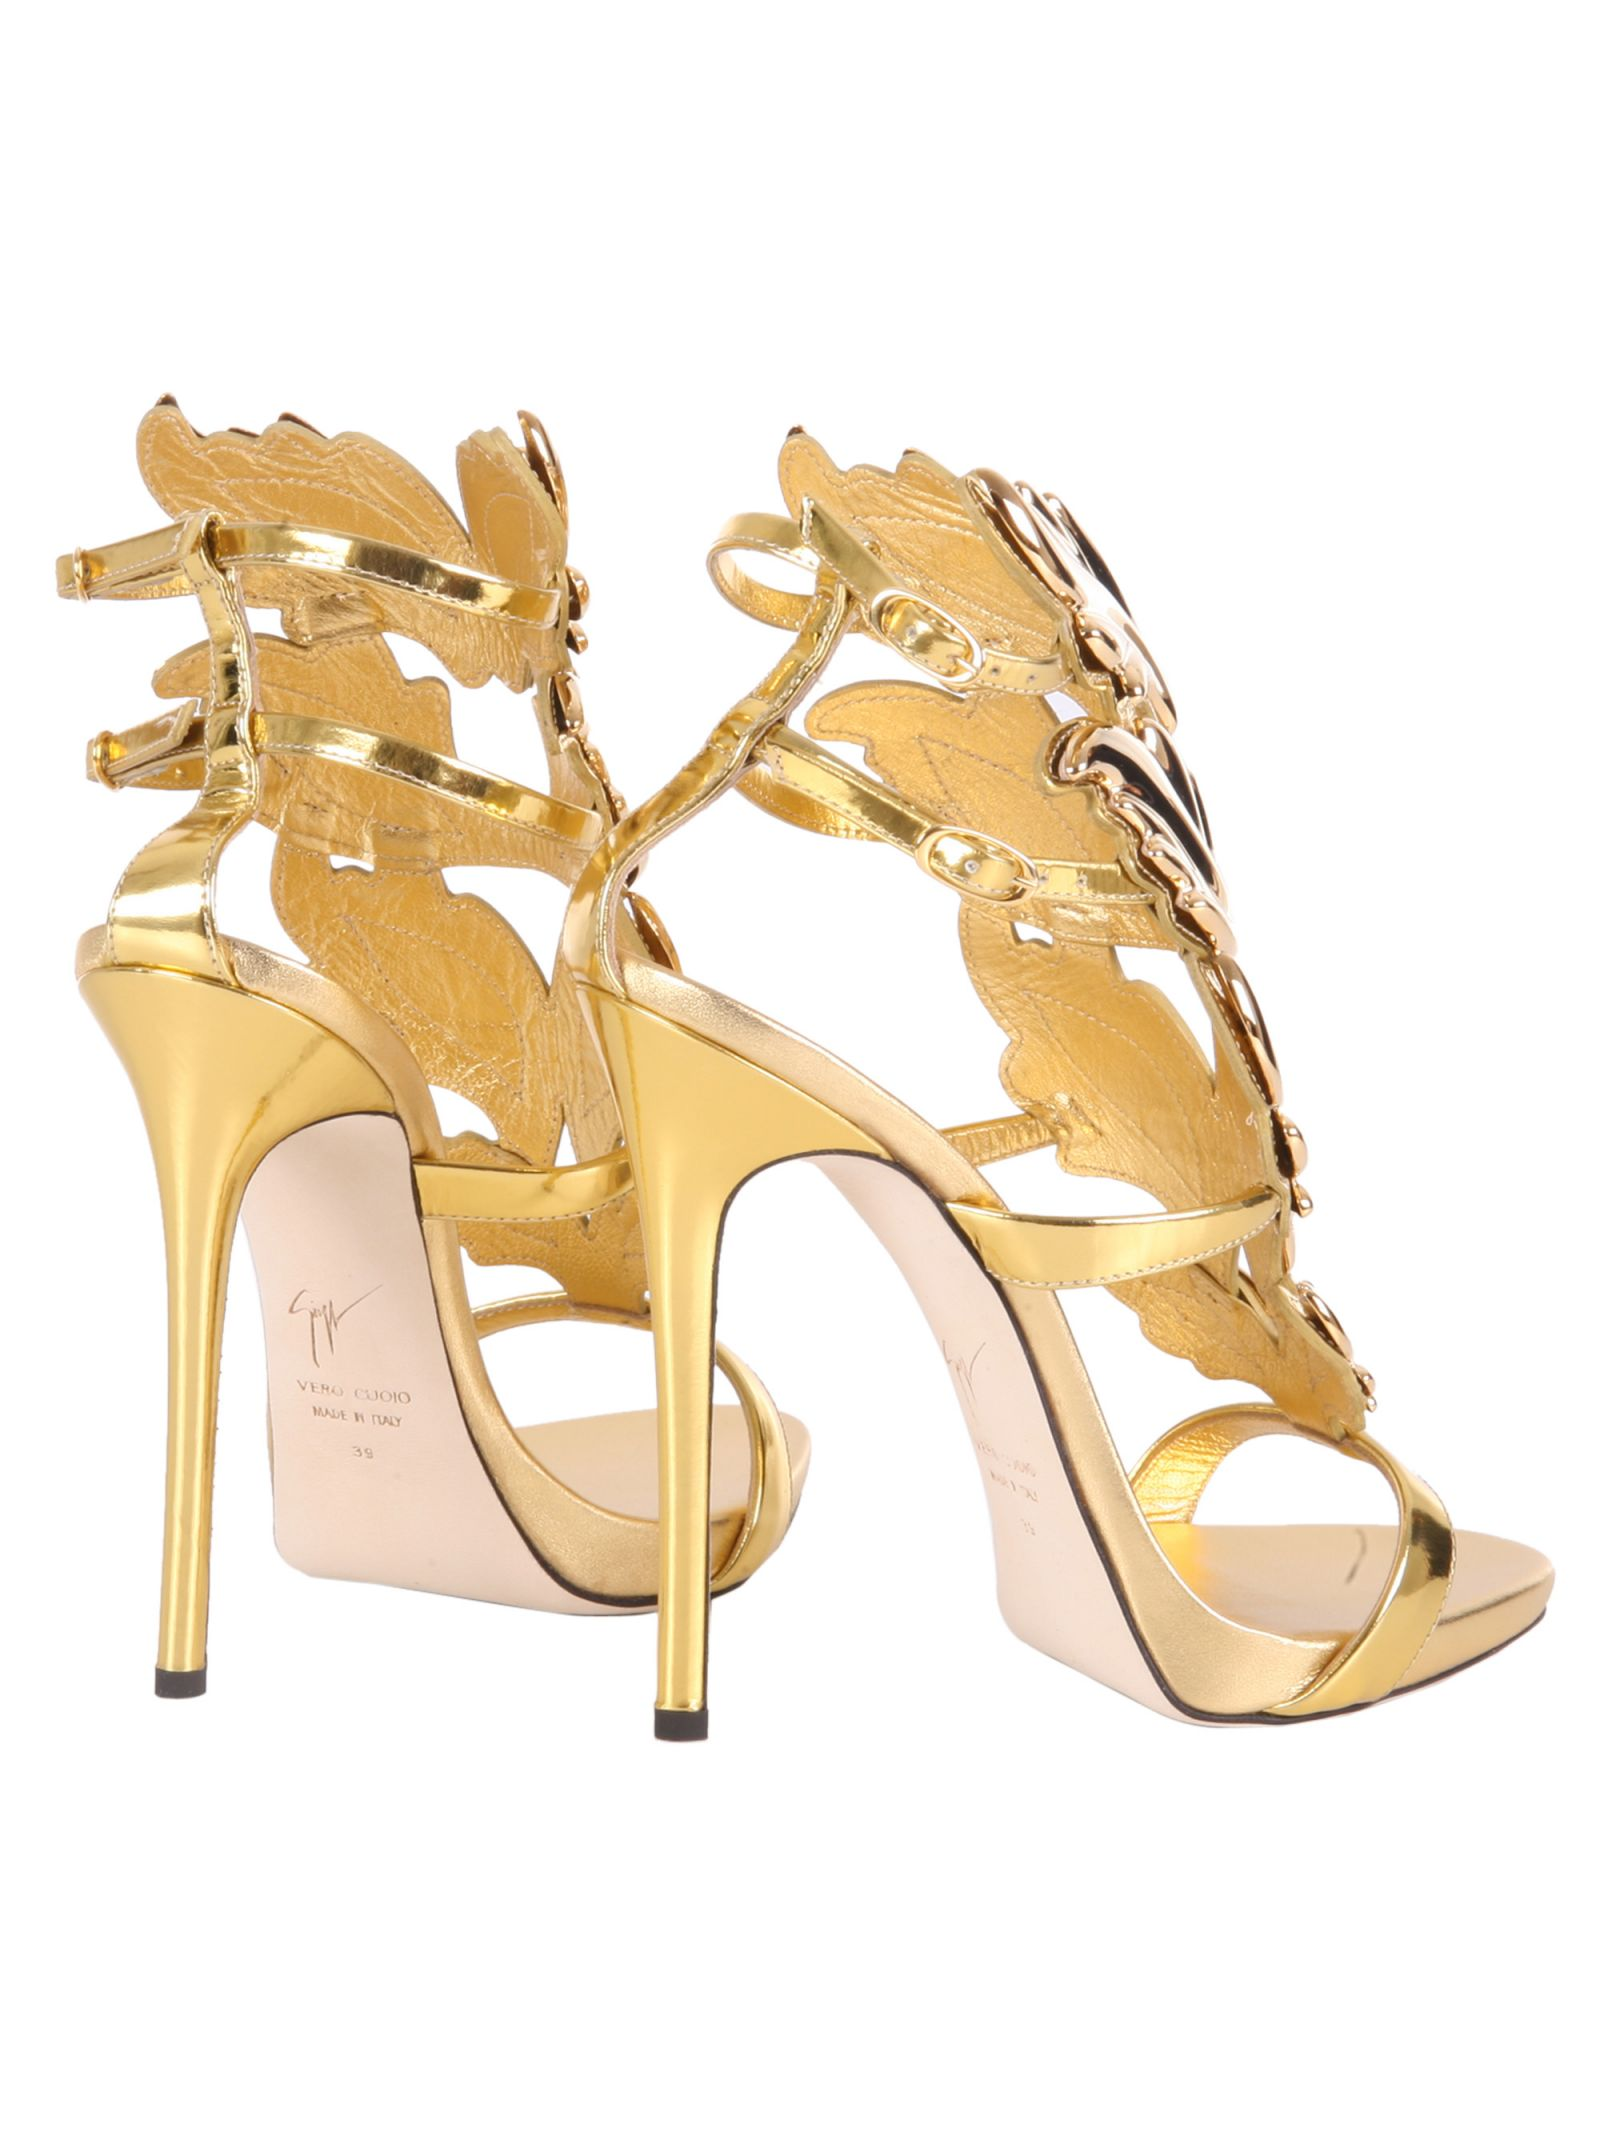 Patent Leather Sandals With Double Buckle Fastening Ankle Straps, Golden-metal Cruel Accessory, Leather Lining And Sole.